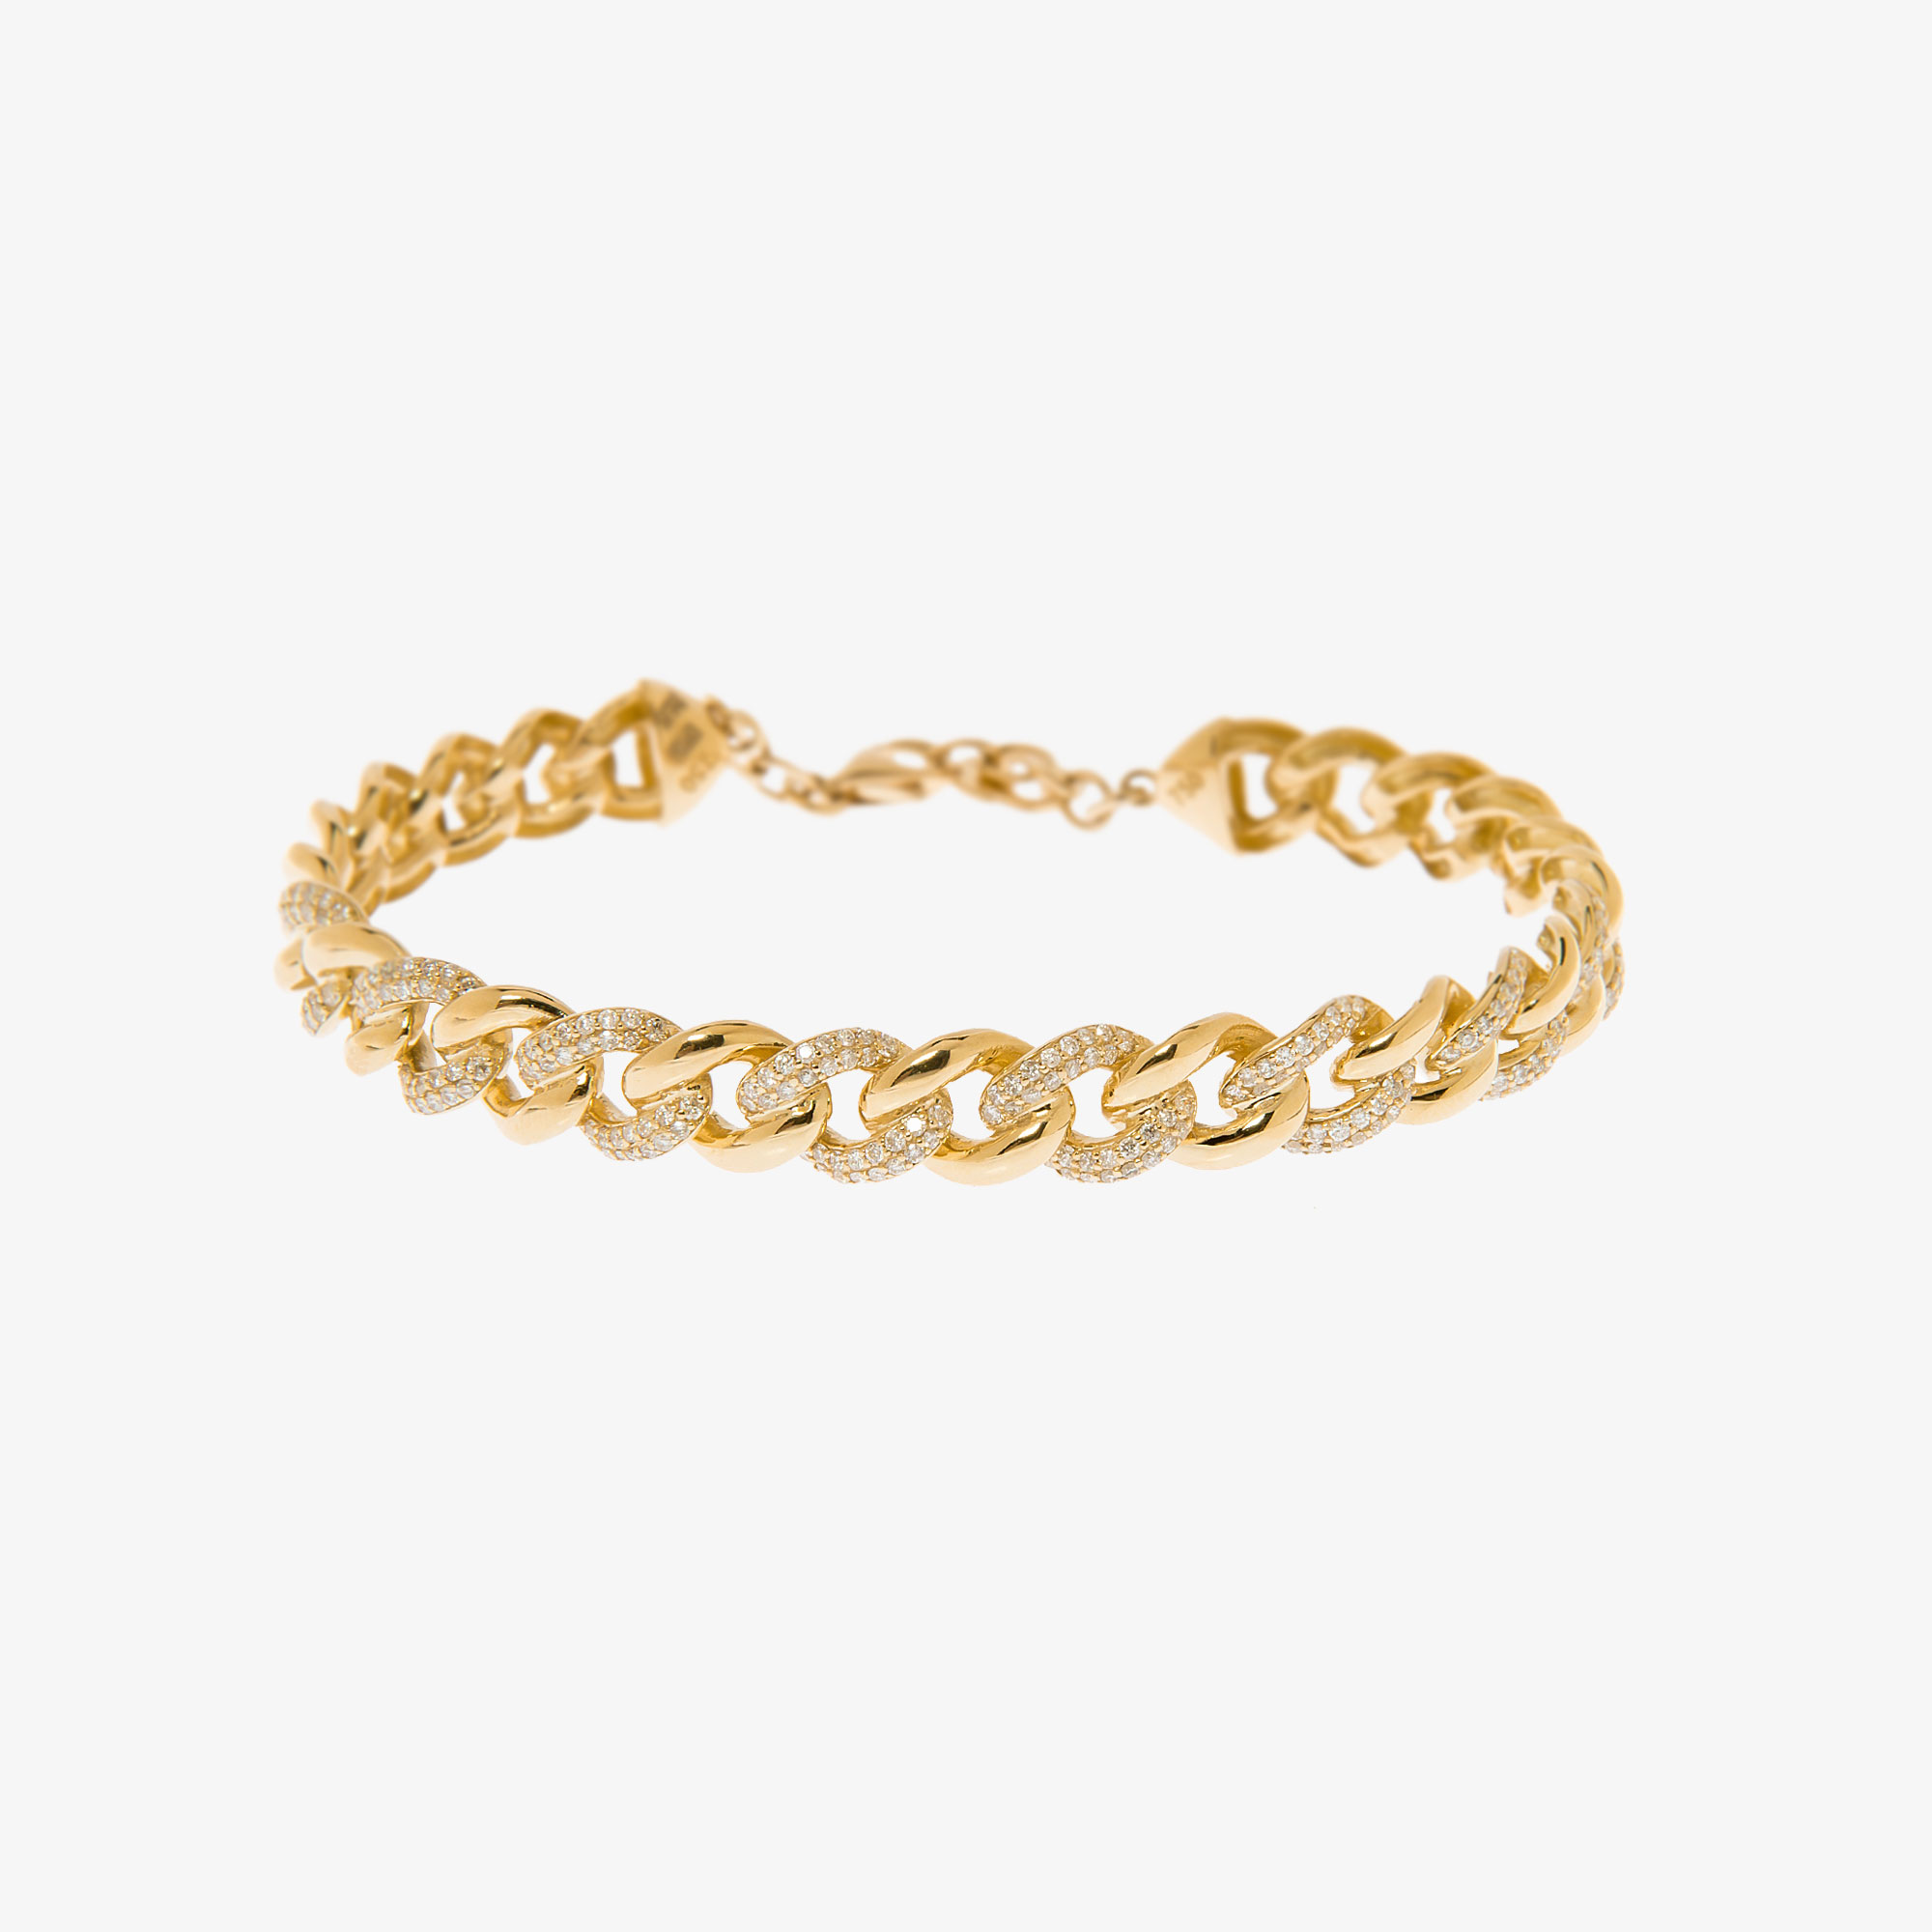 Chain bangle diamond bracelet